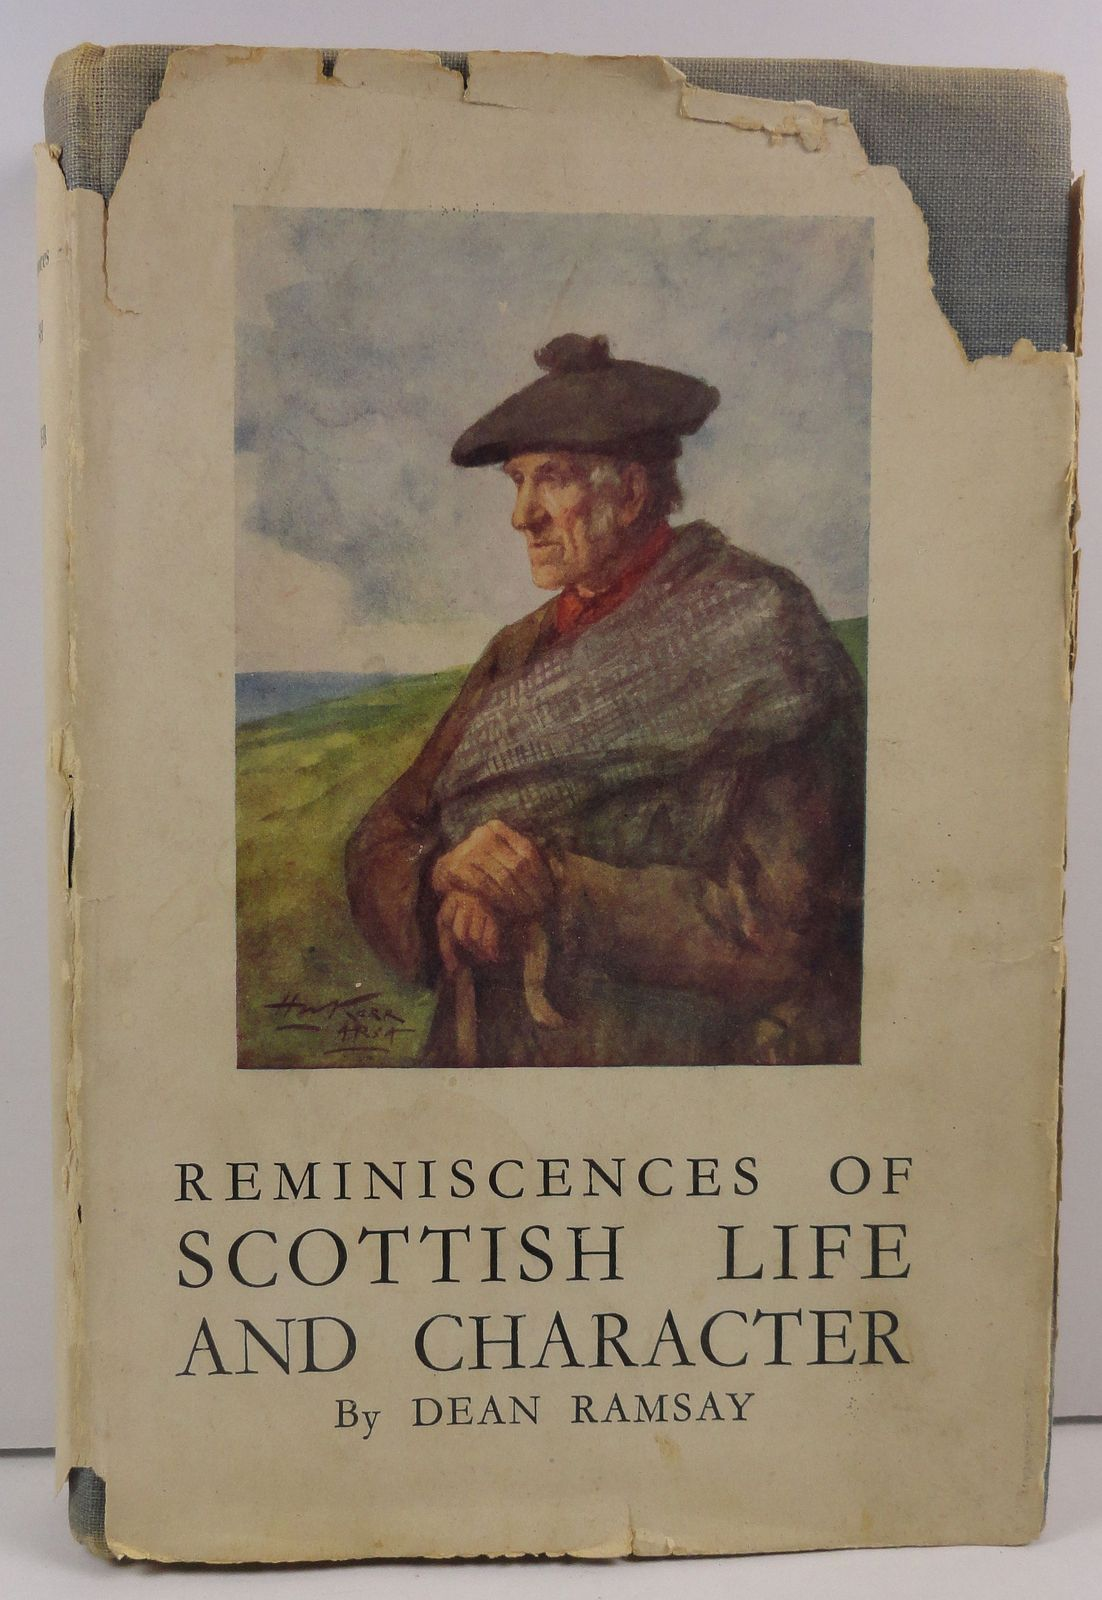 Reminiscences of Scottish Life and Character by Dean Ramsay